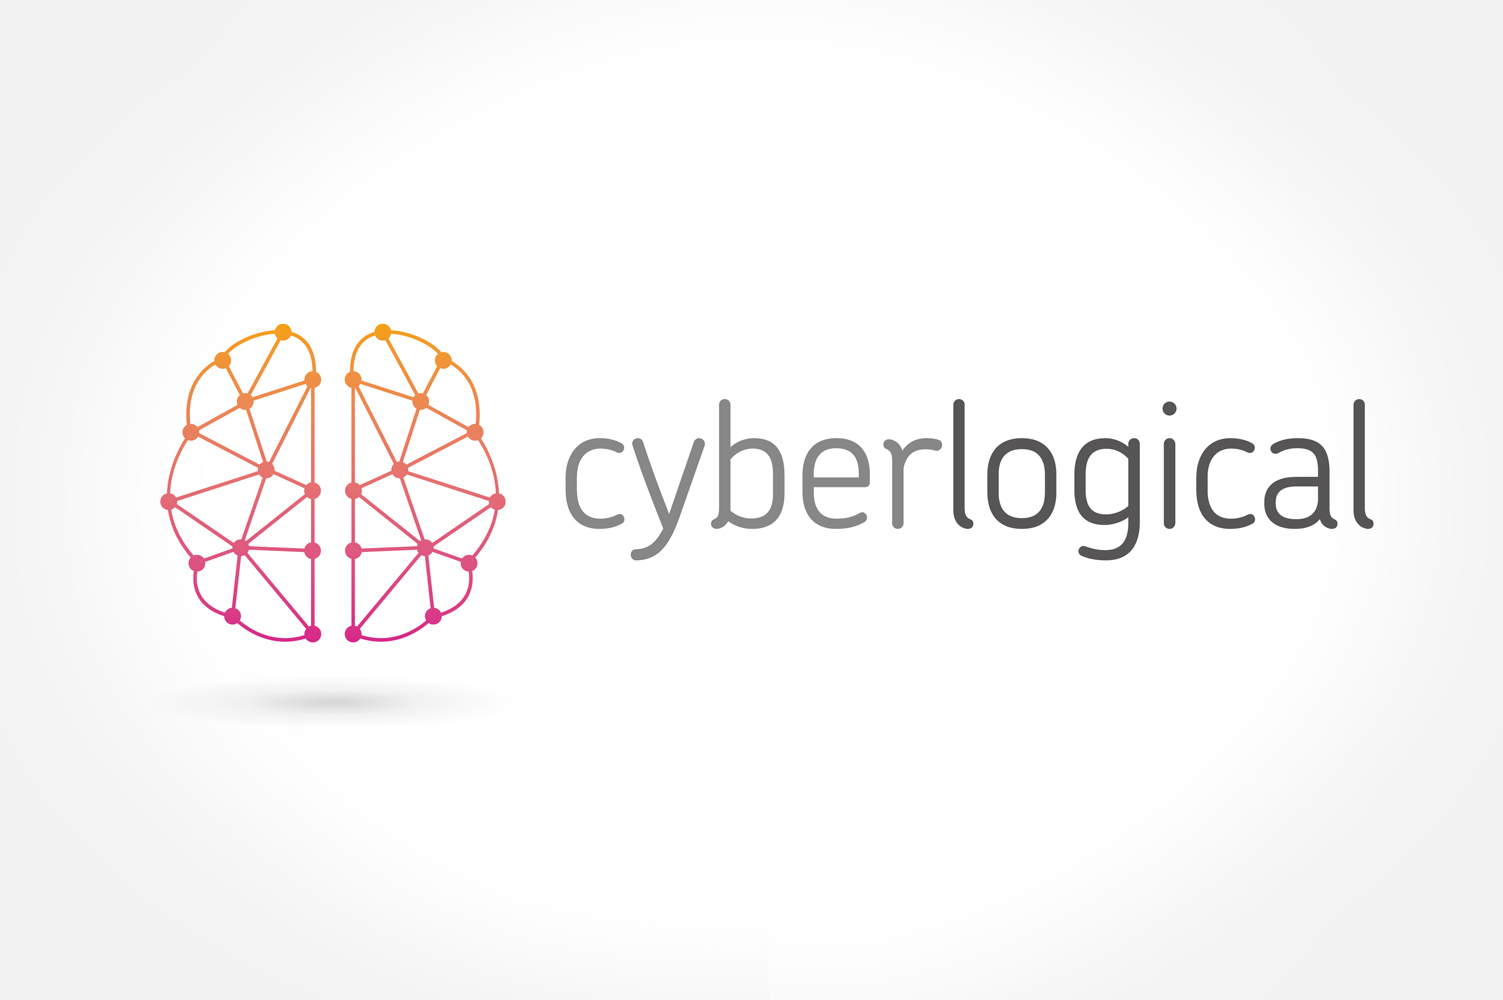 Cyberlogical branding